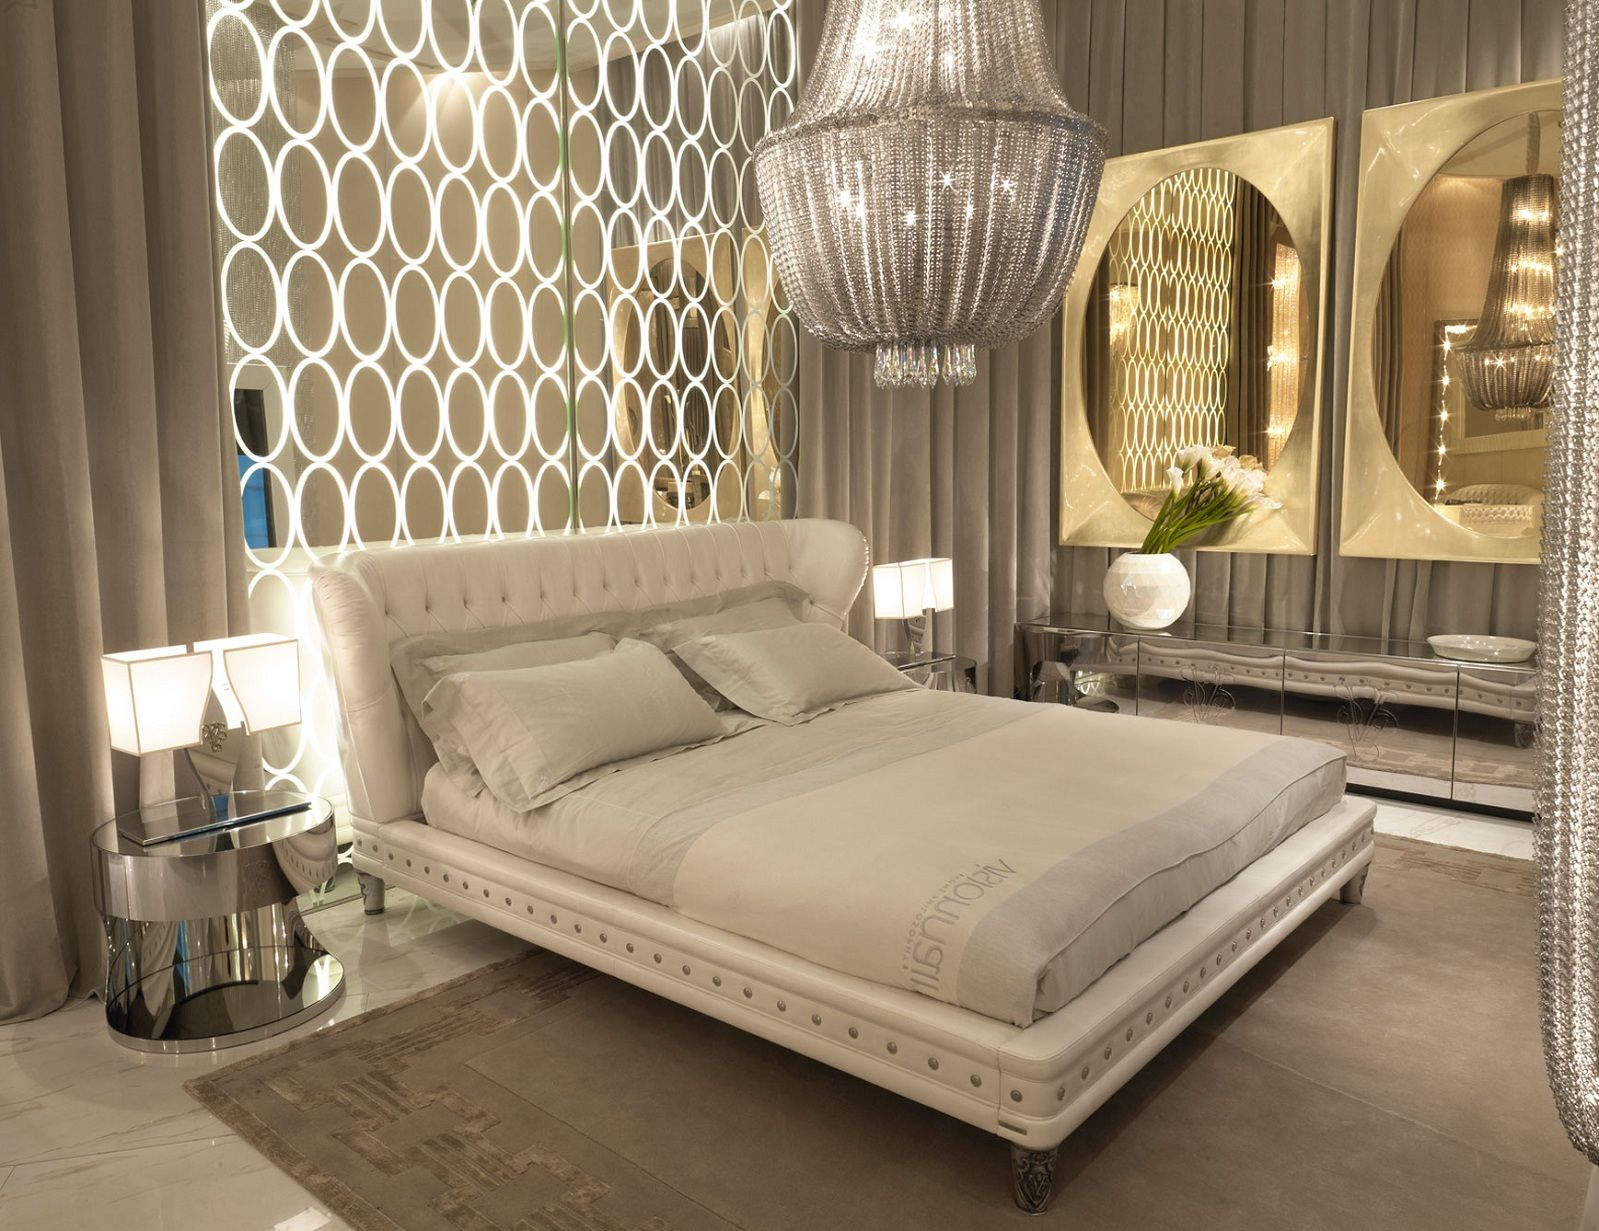 glamorous bedroom furniture. Bedrooms Glamorous Bedroom Furniture R